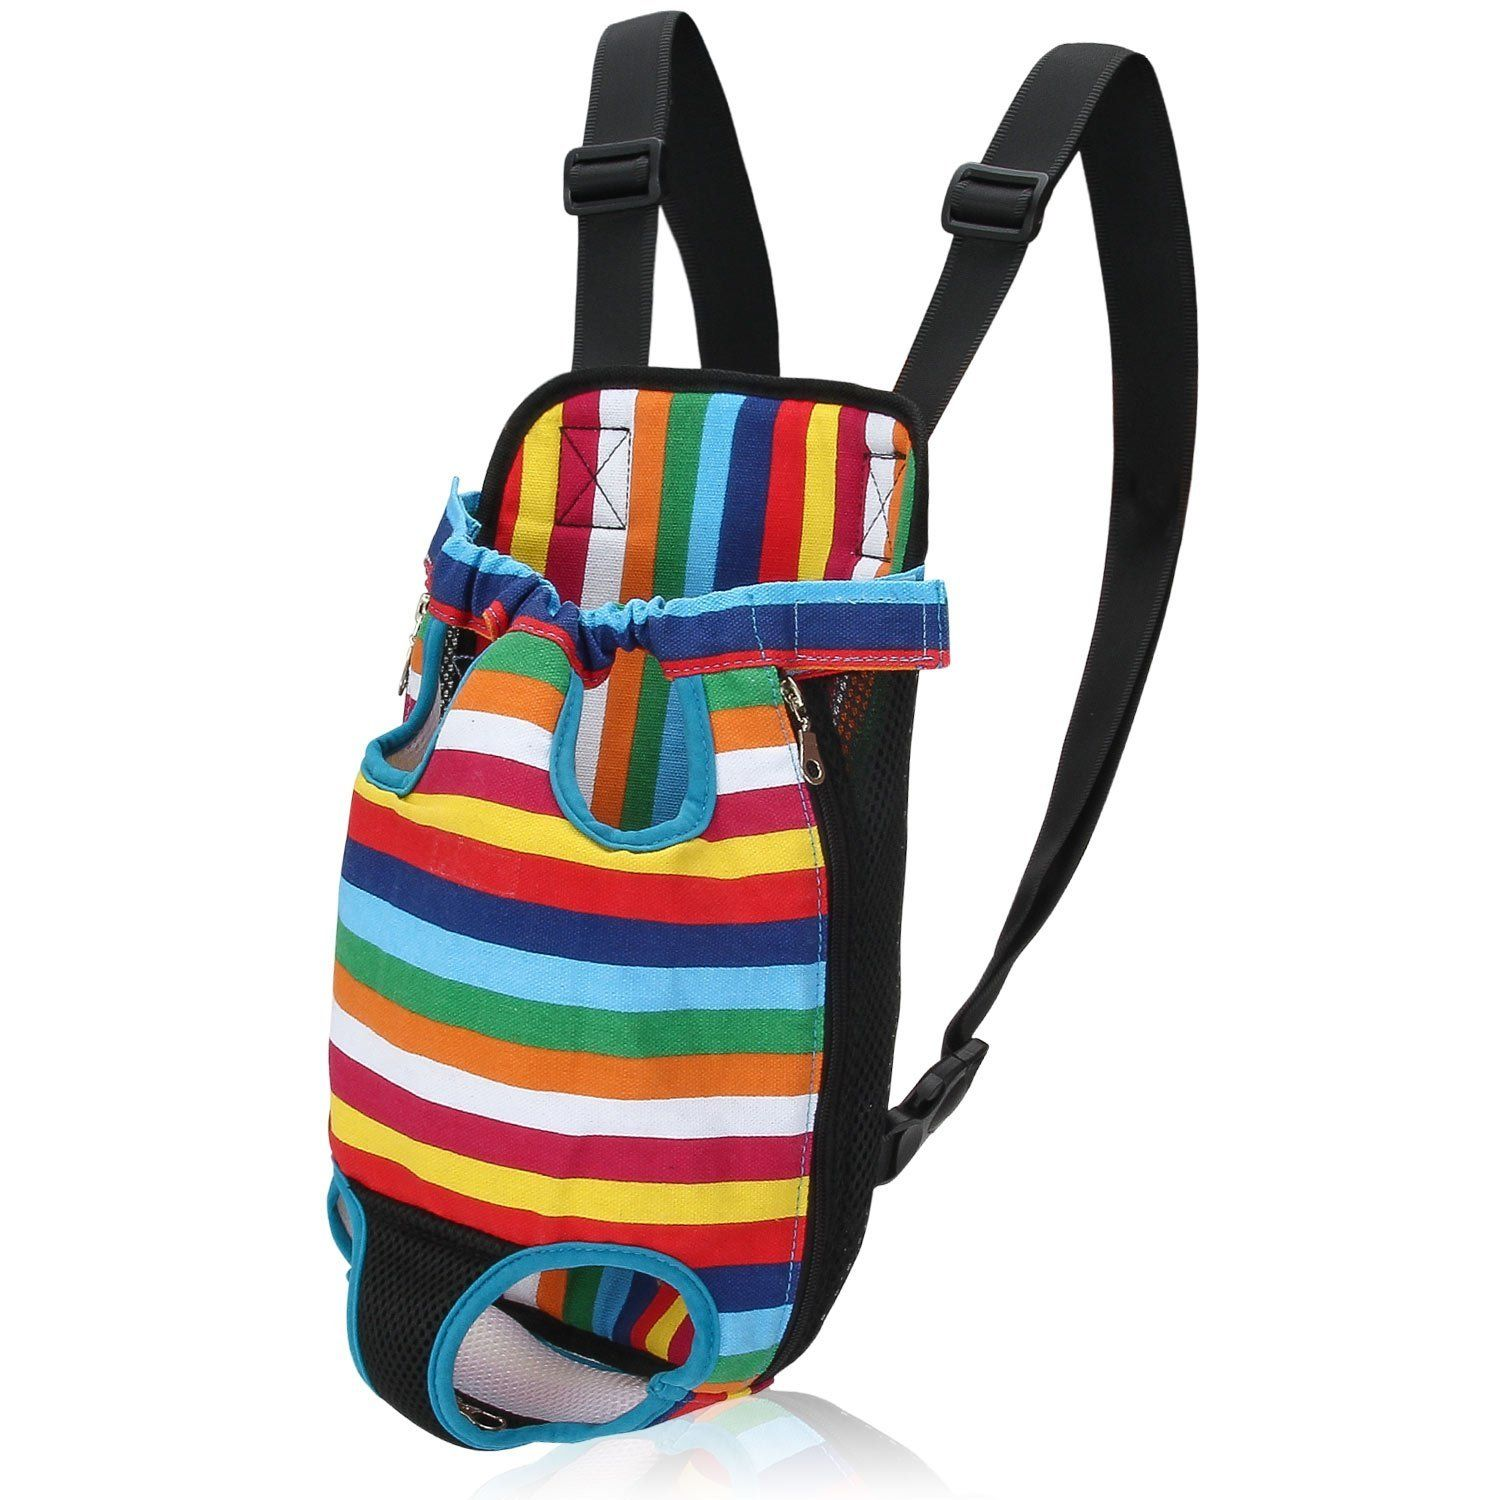 Itery Dog Carrier Hands Free Carry Pet Portable Breathable